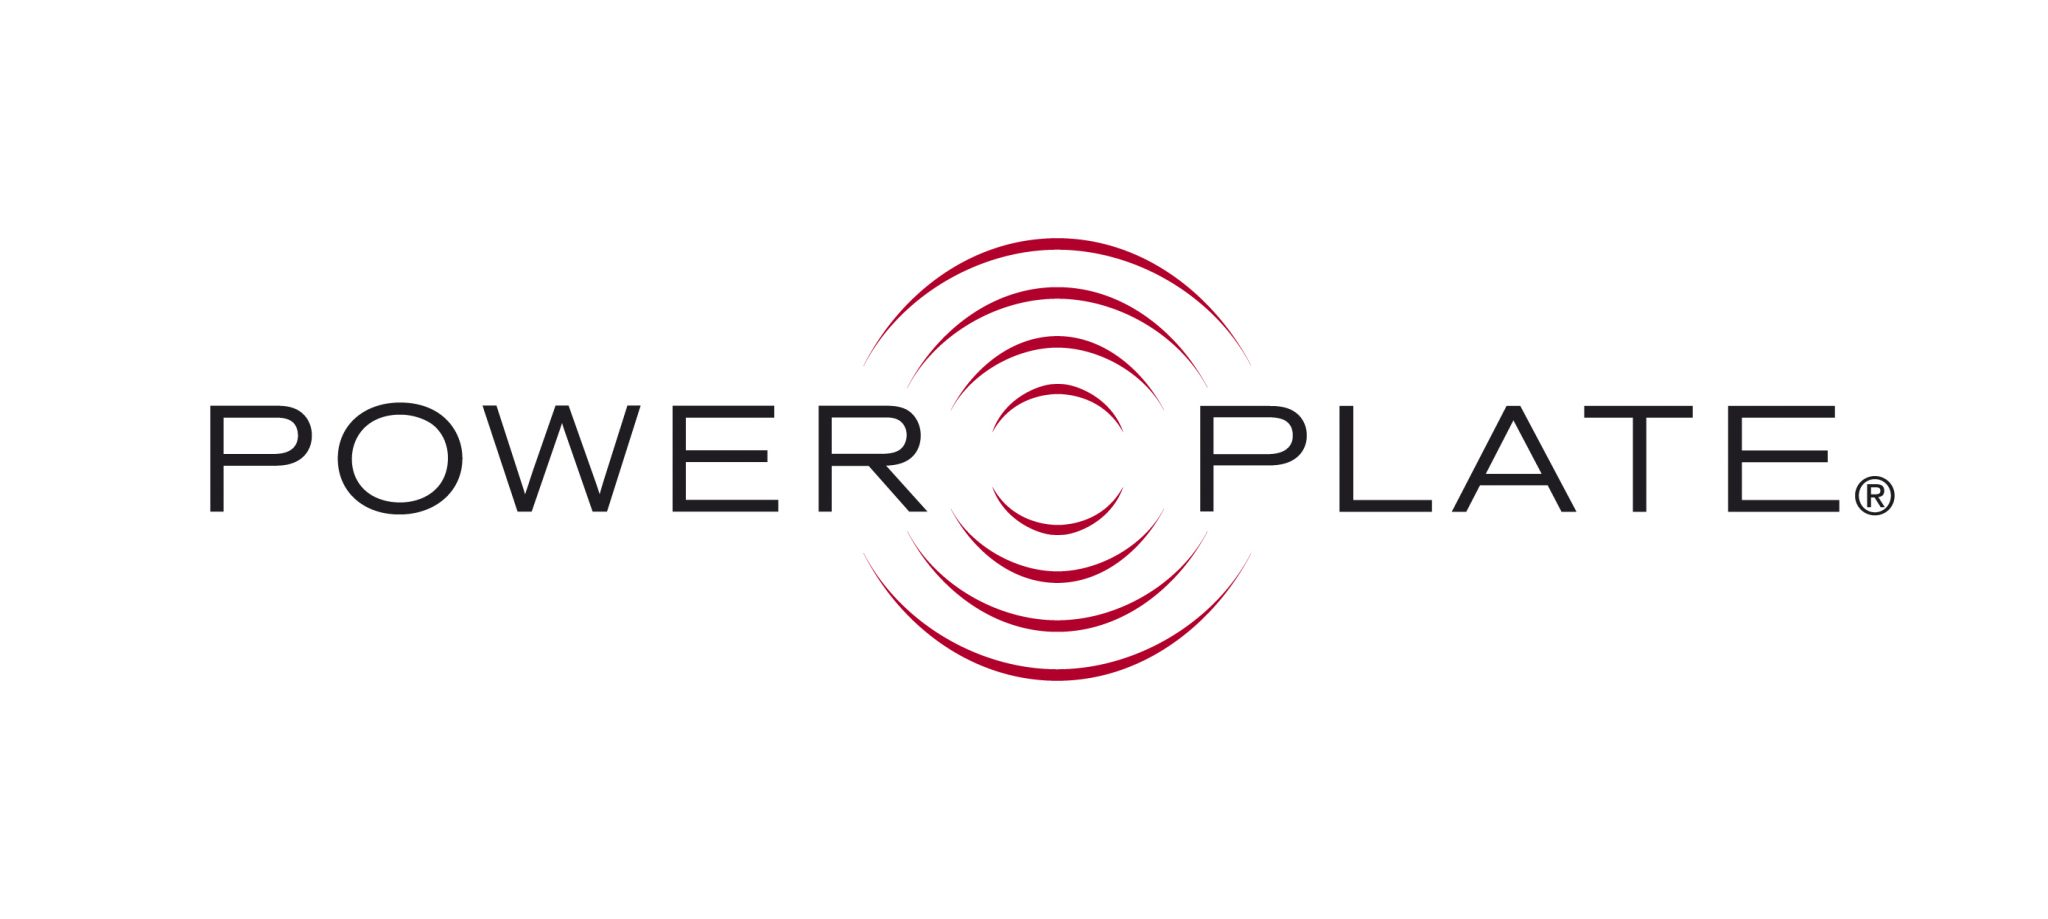 PowerPlate-2010-Logo-K_4cRed.jpg